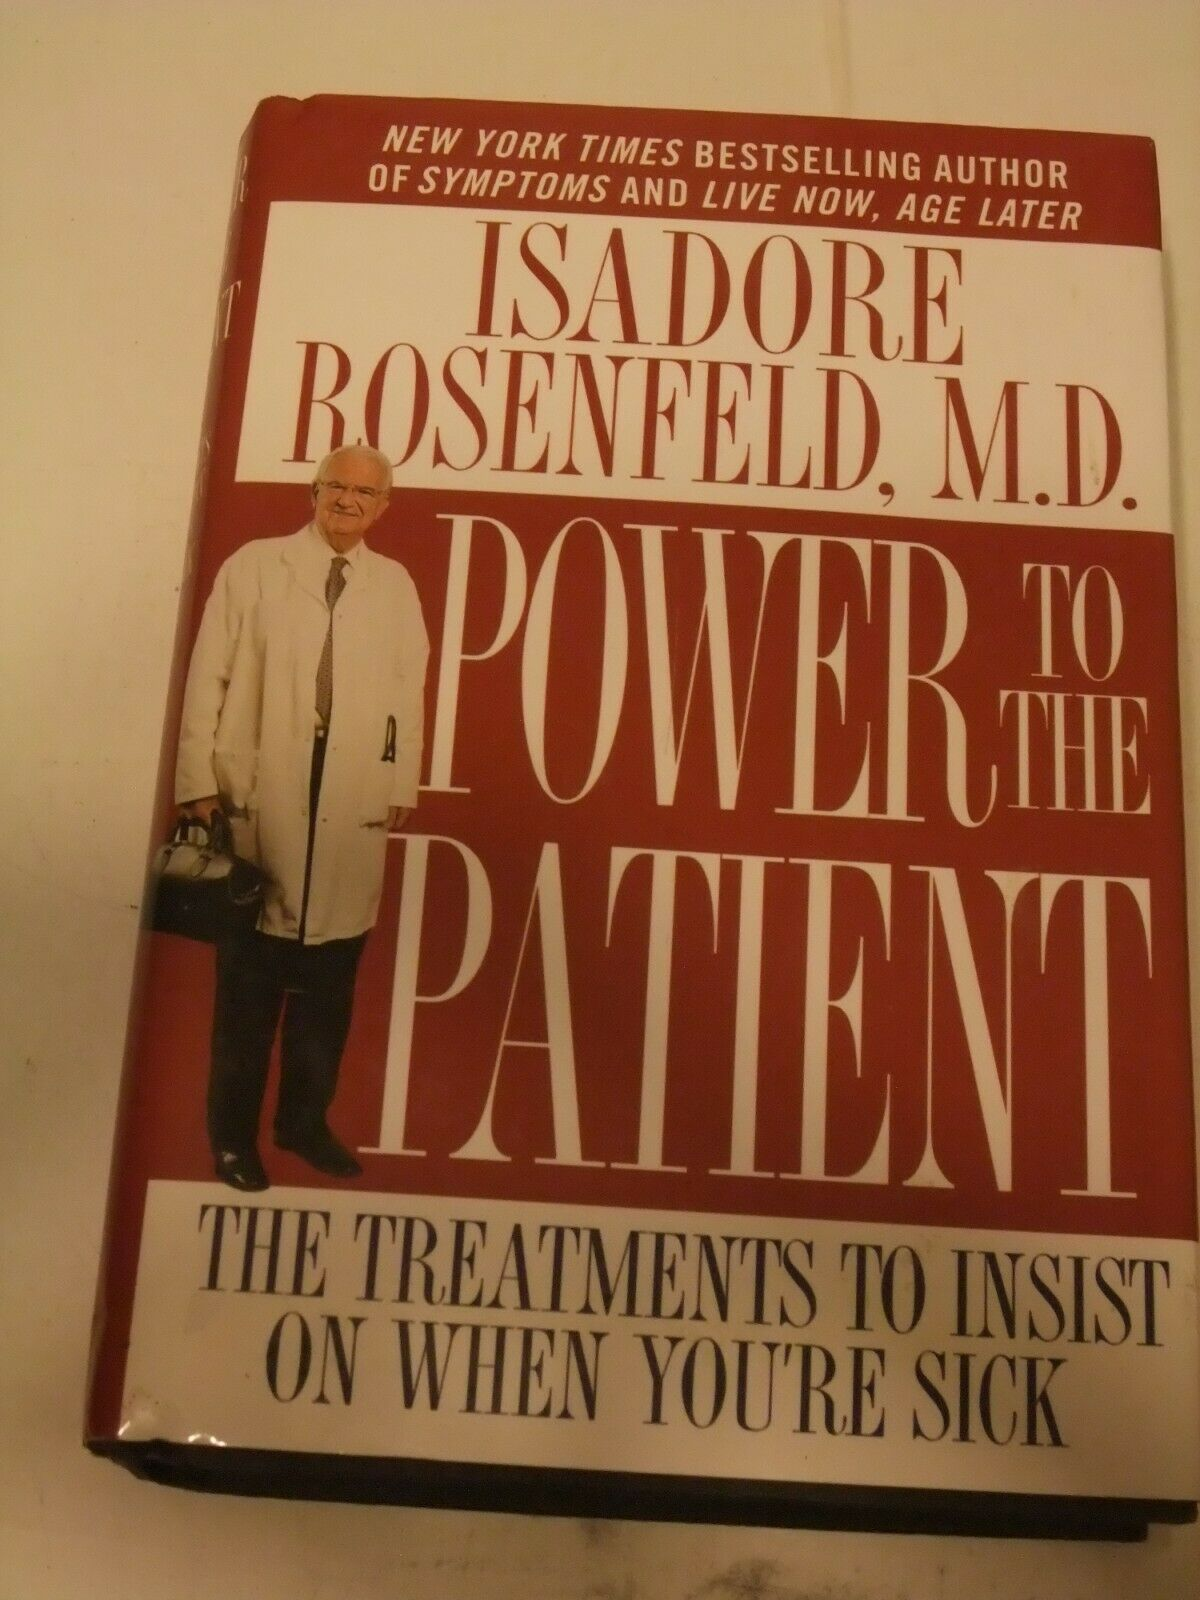 Primary image for Power to the Patient: The Treatments to Insist on When You're Sick by Rosenfeld